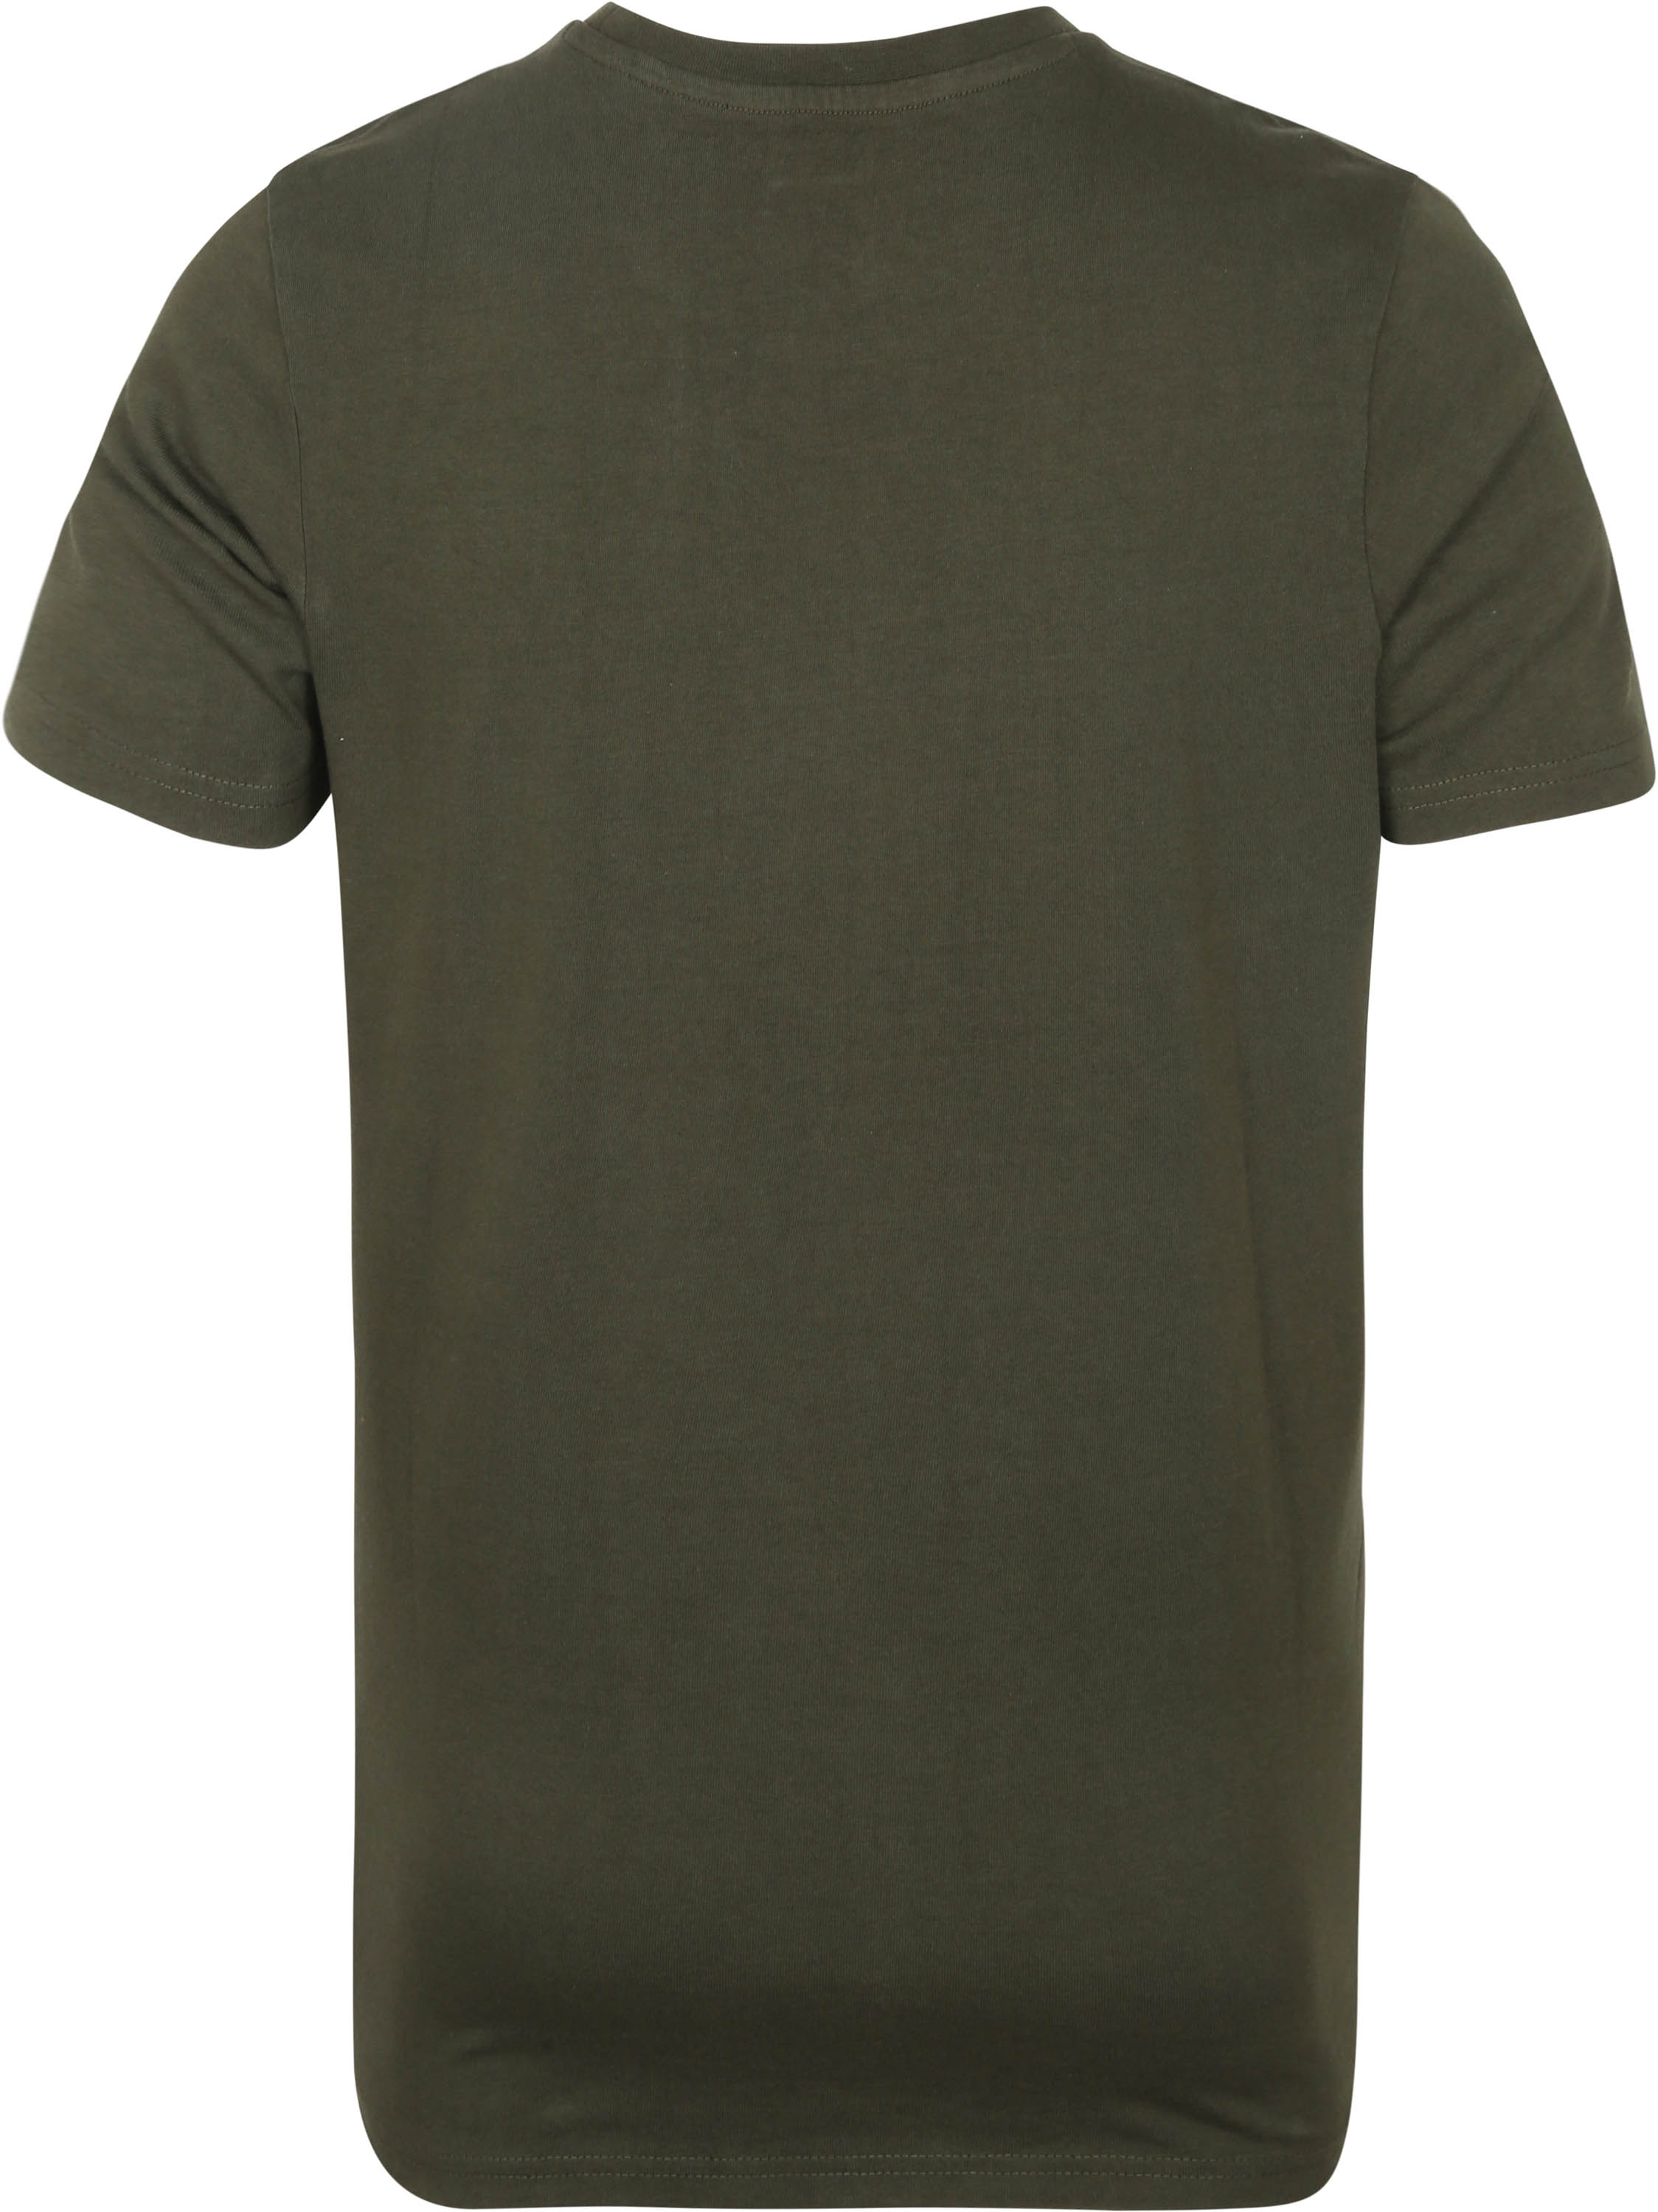 KnowledgeCotton Apparel T-shirt Alder Forrest Groen